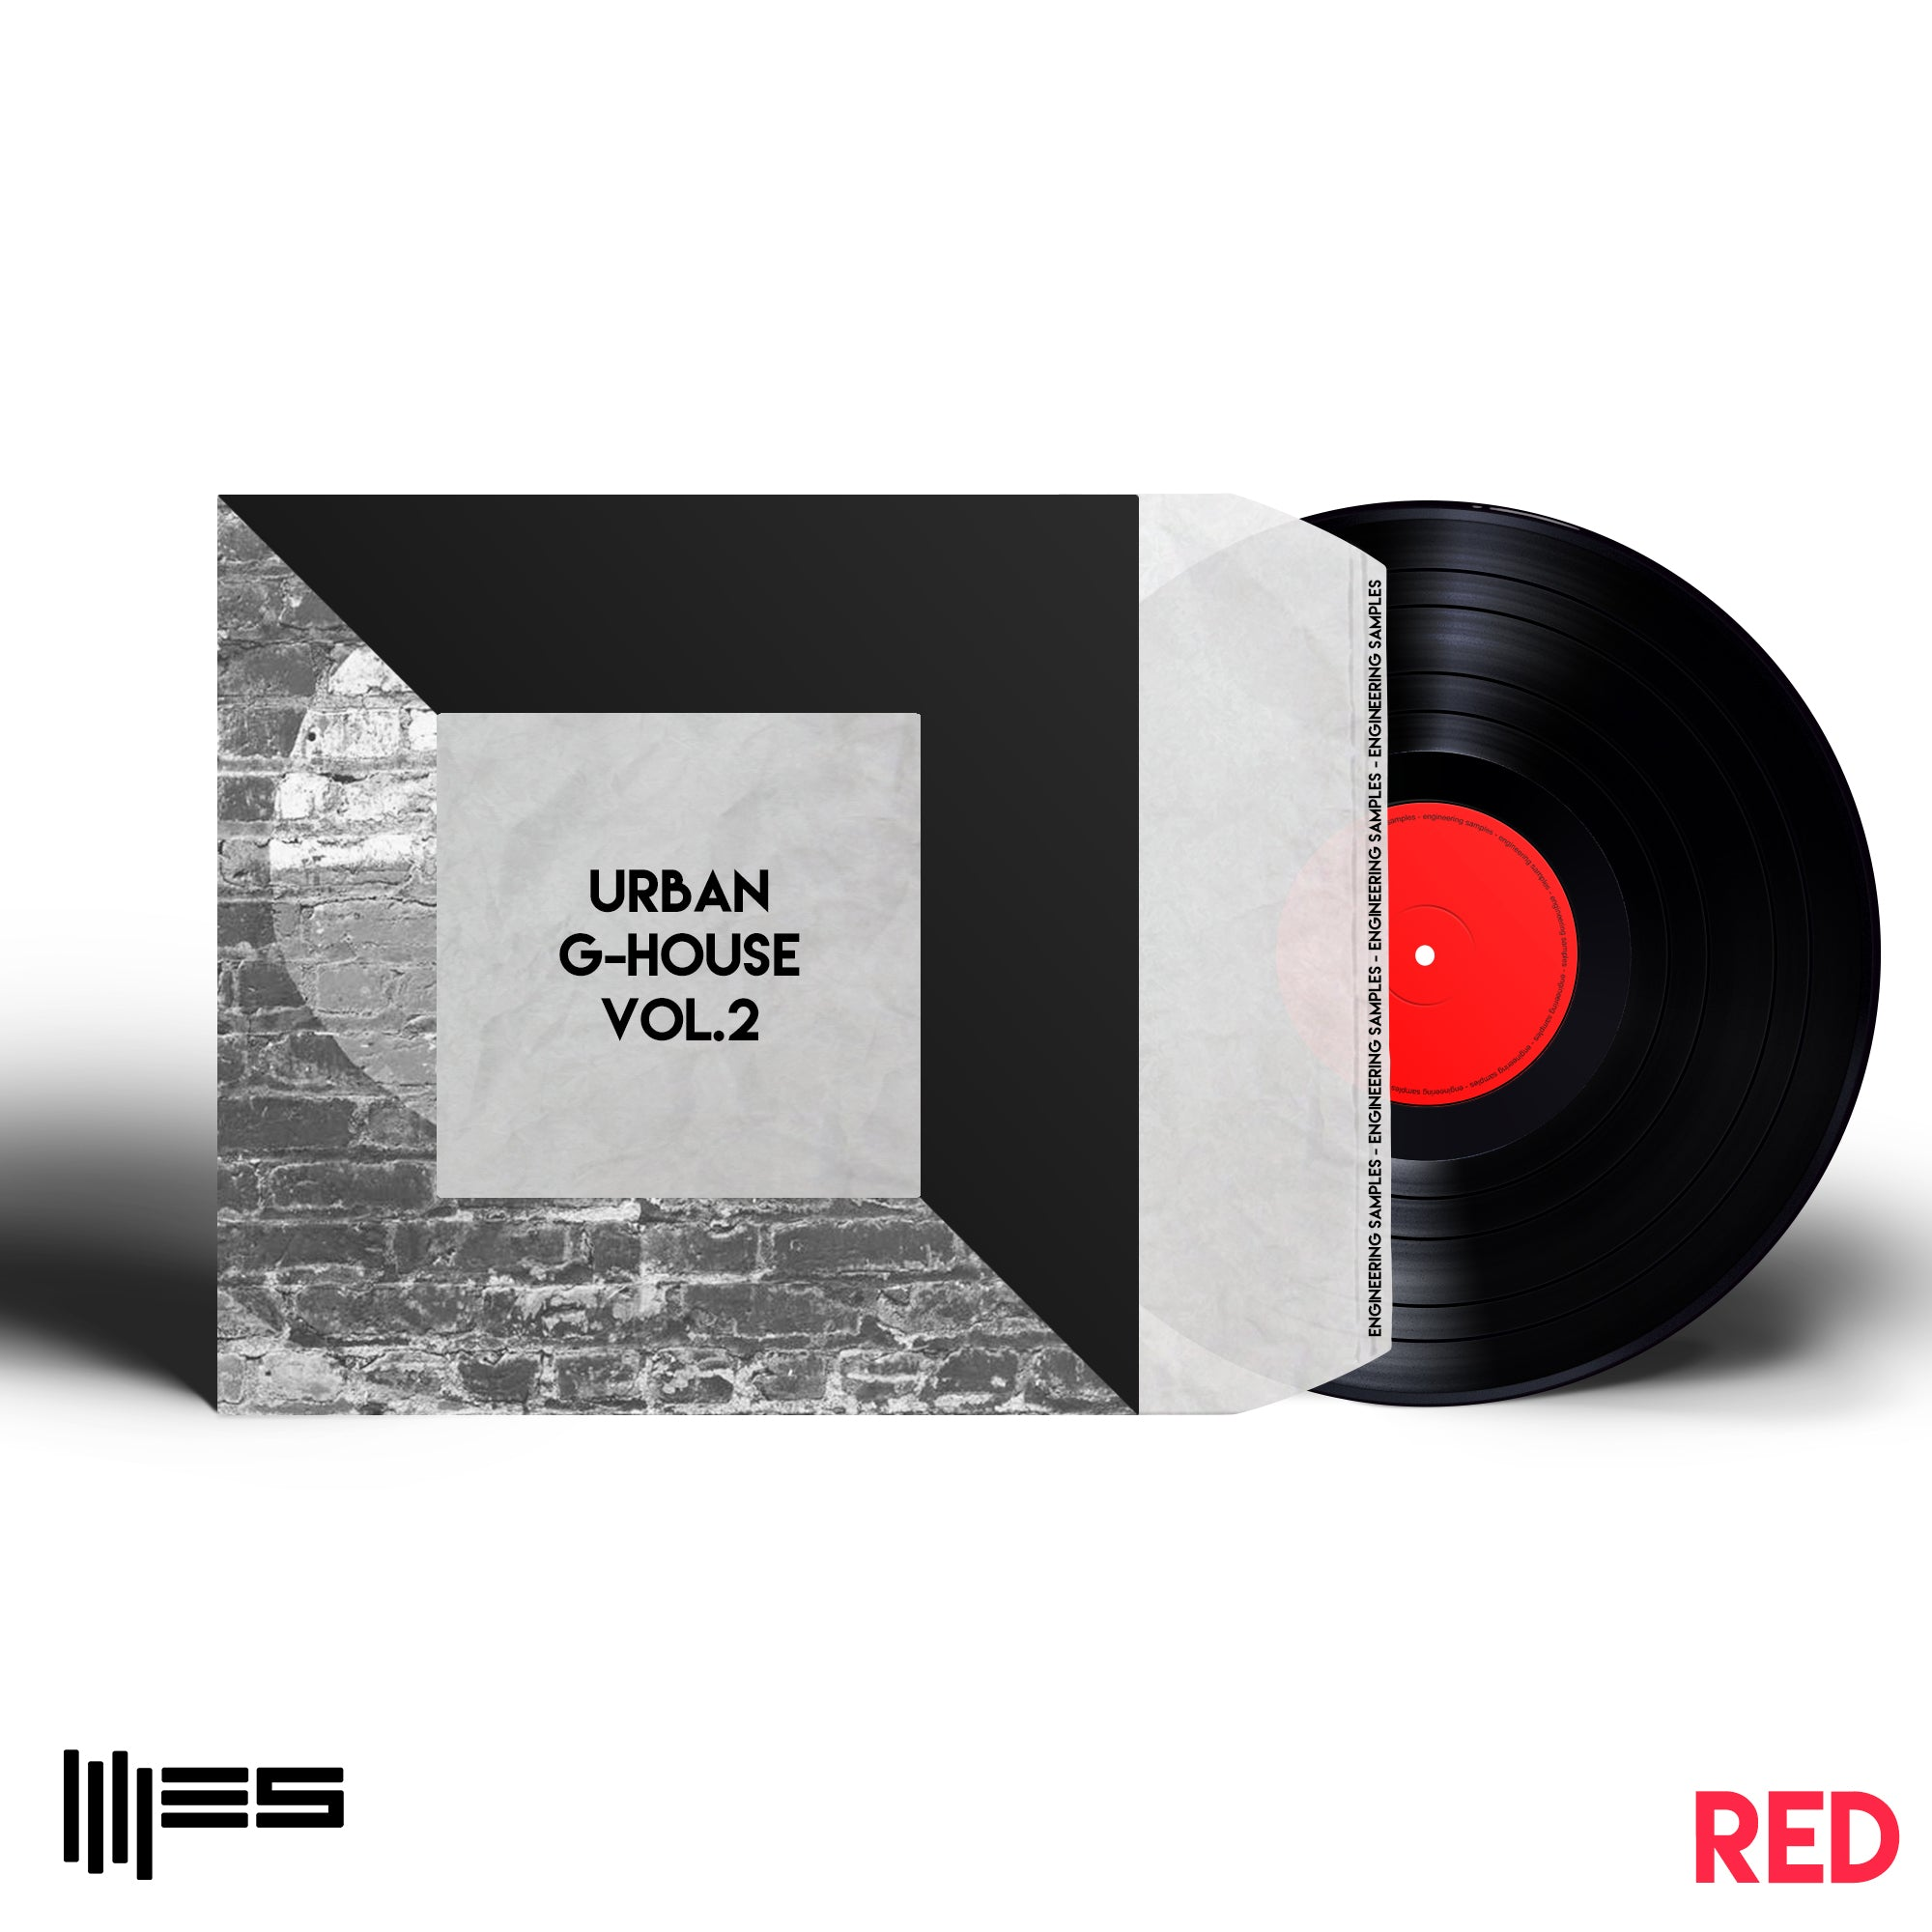 Urban G-House Vol.2